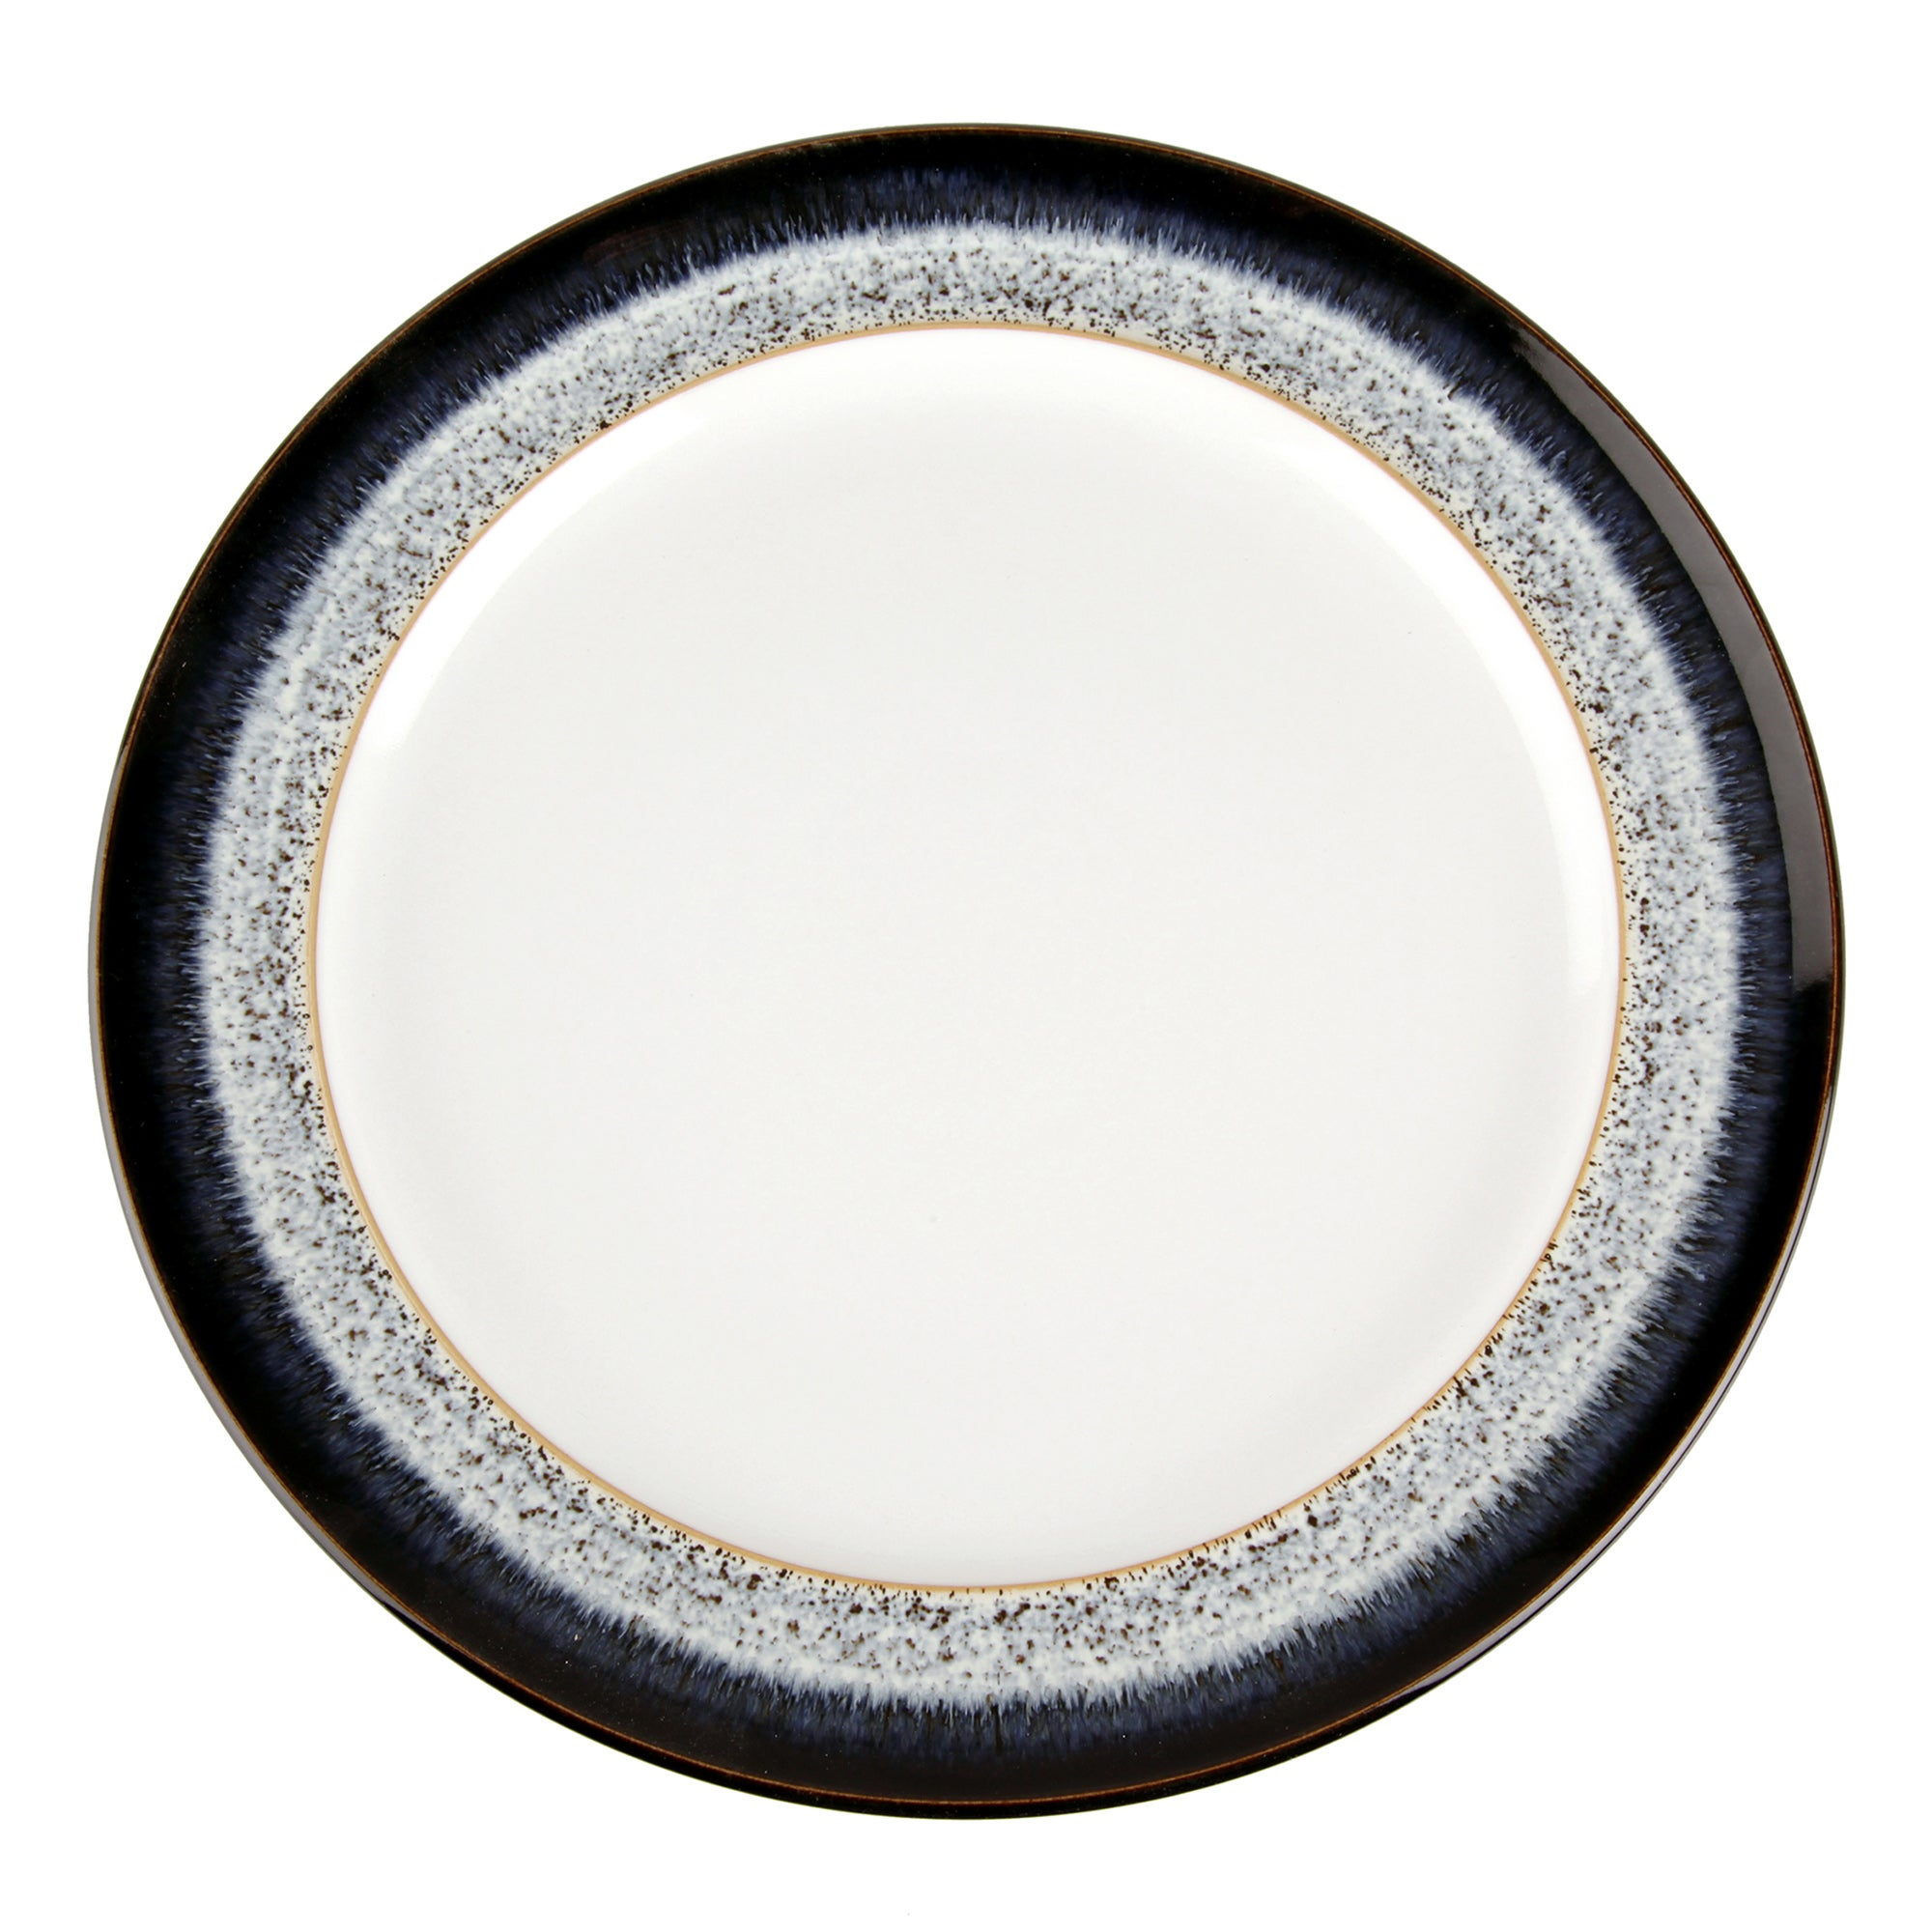 Image of Denby Halo Dinner Plate Black